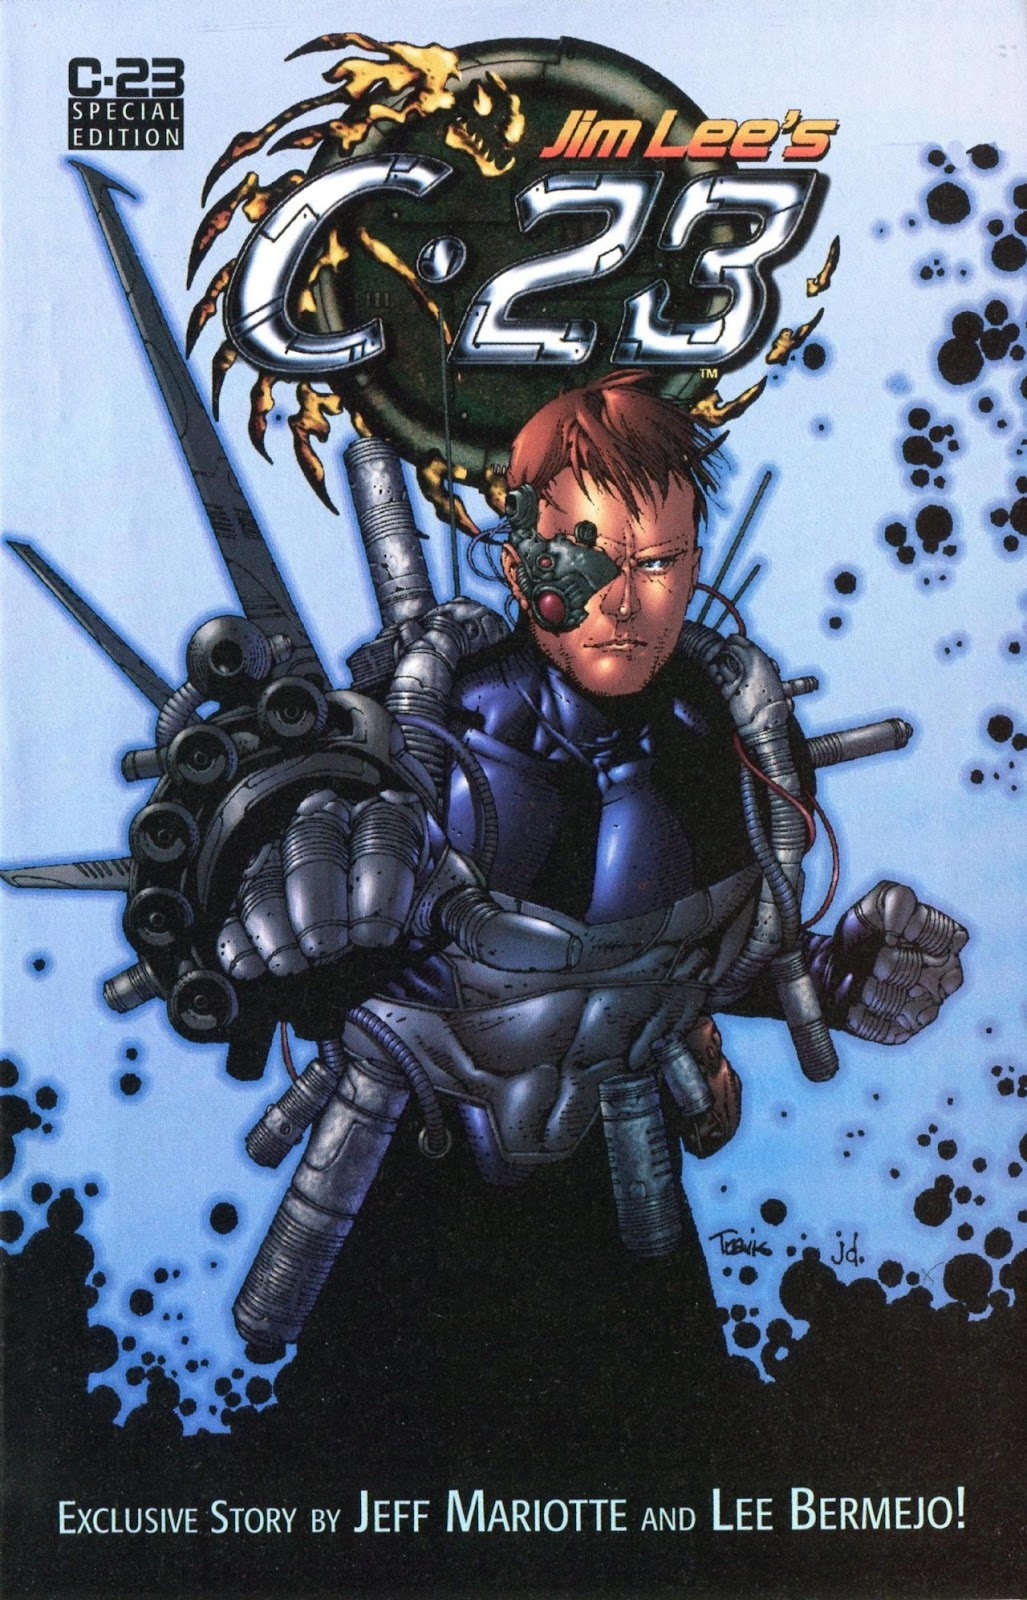 Read online C-23 comic -  Issue # _Ashcan - 1